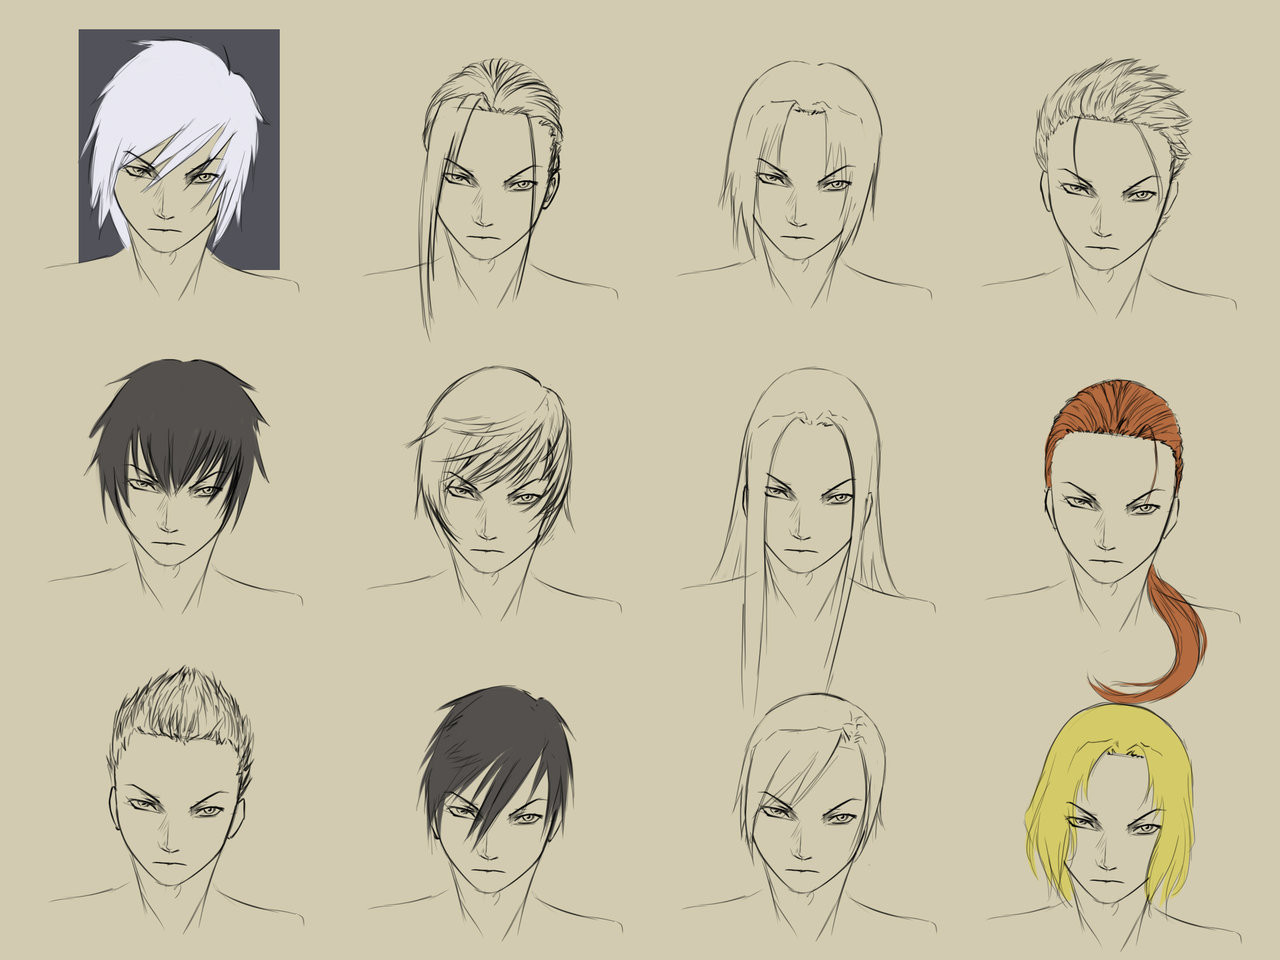 Manga Hairstyles Male  Male Hairstyles by forgotten wings on DeviantArt